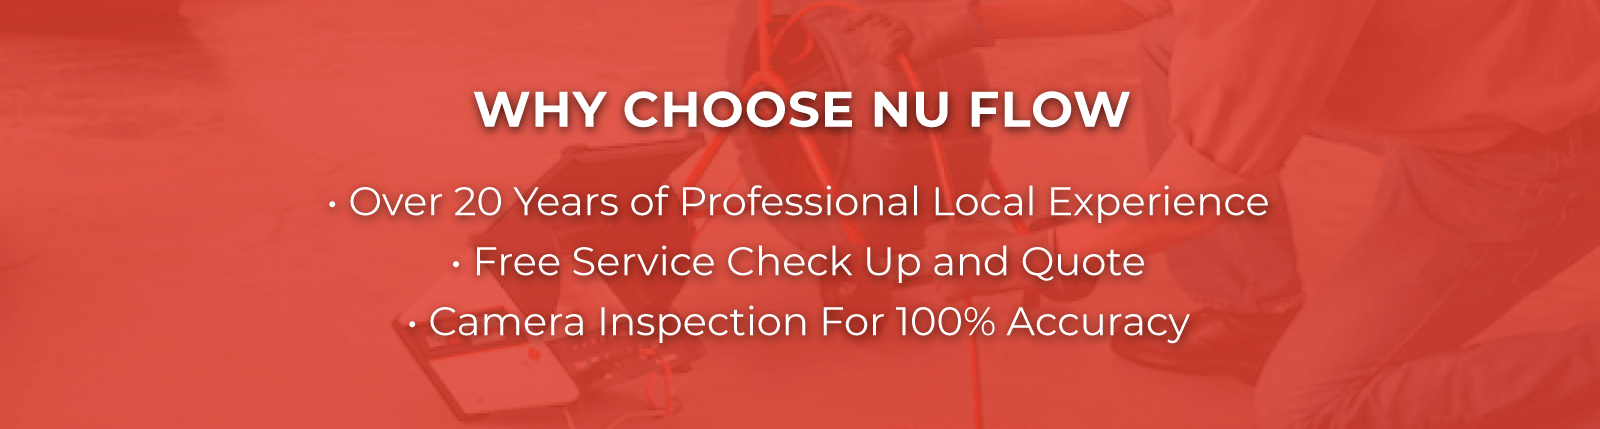 nu flow oklahoma sewer repair 1 Trenchless Sewer Line Replacement Oklahoma City, OK